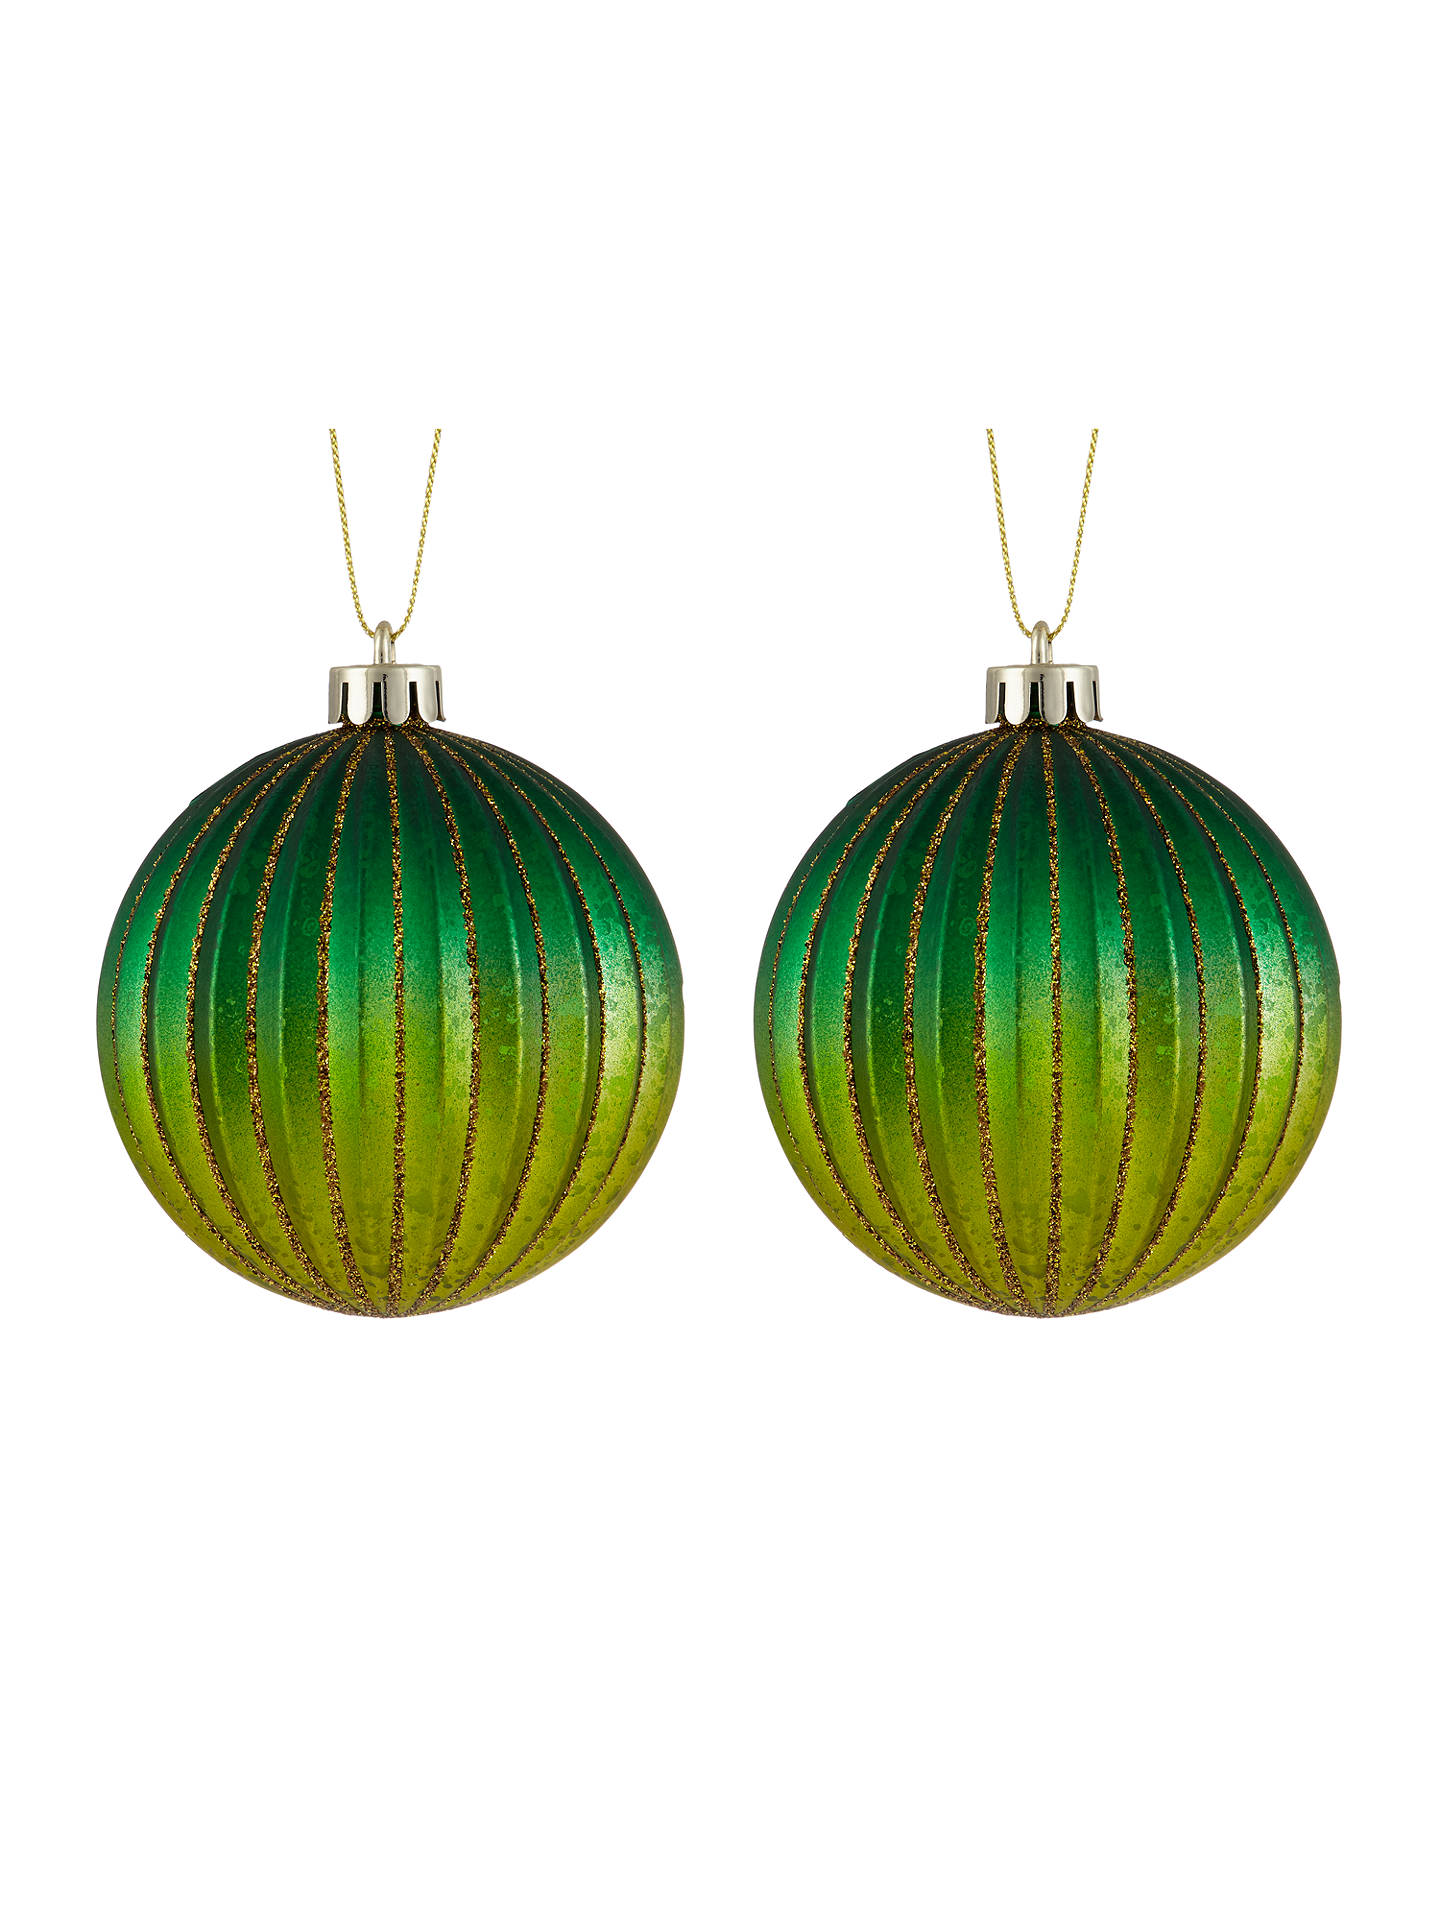 BuyJohn Lewis & Partners Emerald Shatterproof Baubles, Box of 4, Green Online at johnlewis.com